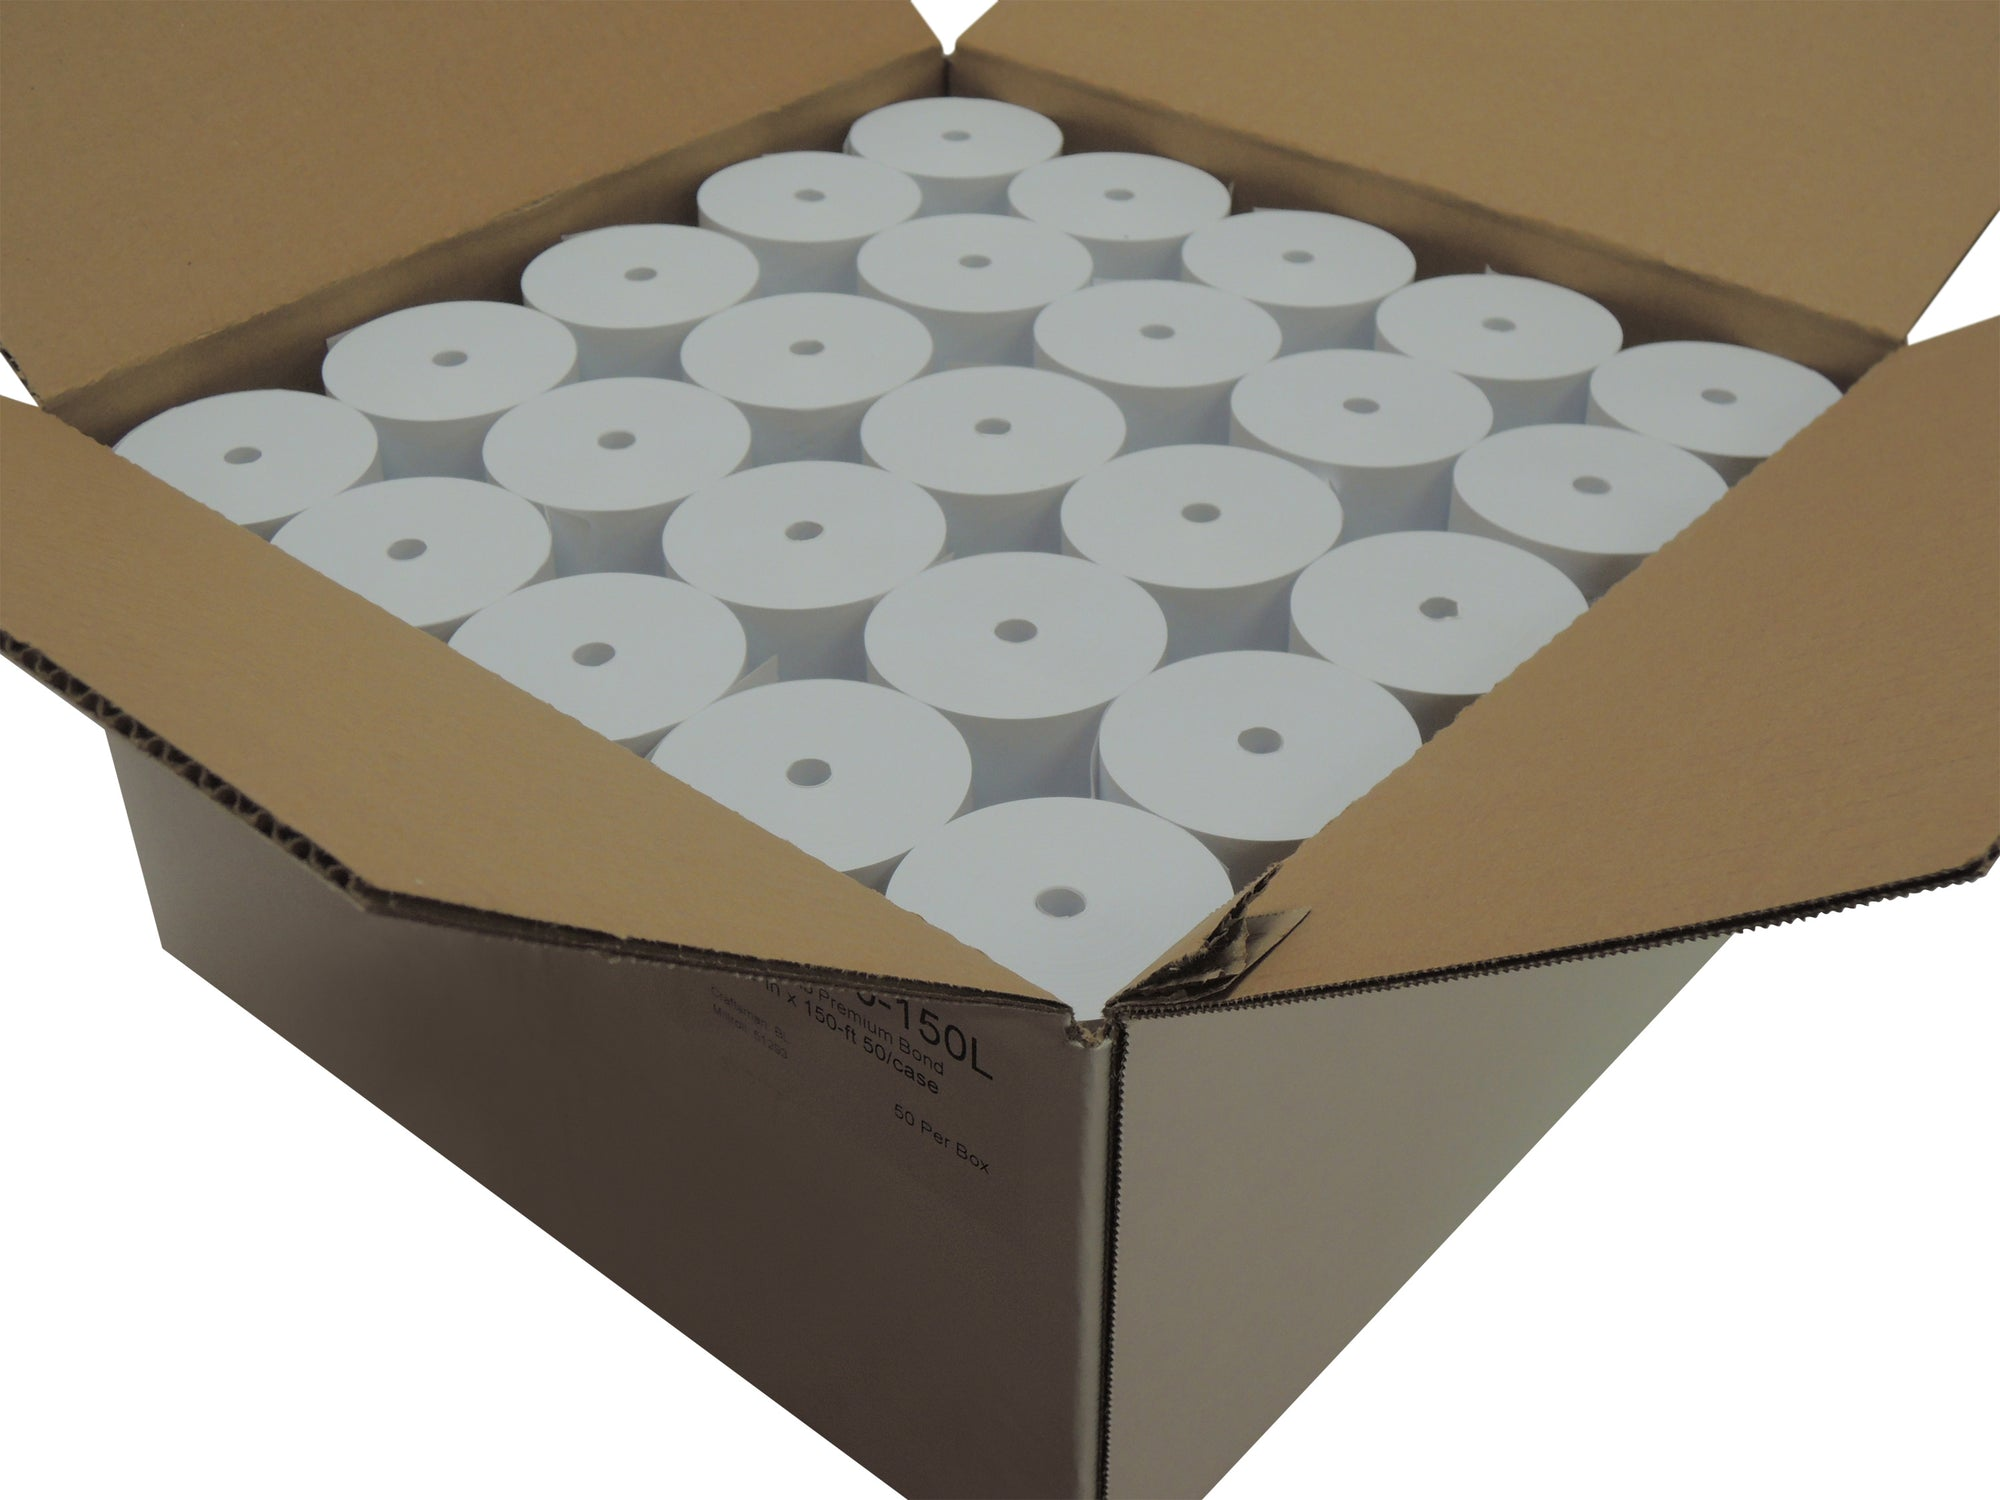 1 Ply Bond 1 3/4 (44mm) x 150 ft CORELESS Bright White 50 rolls